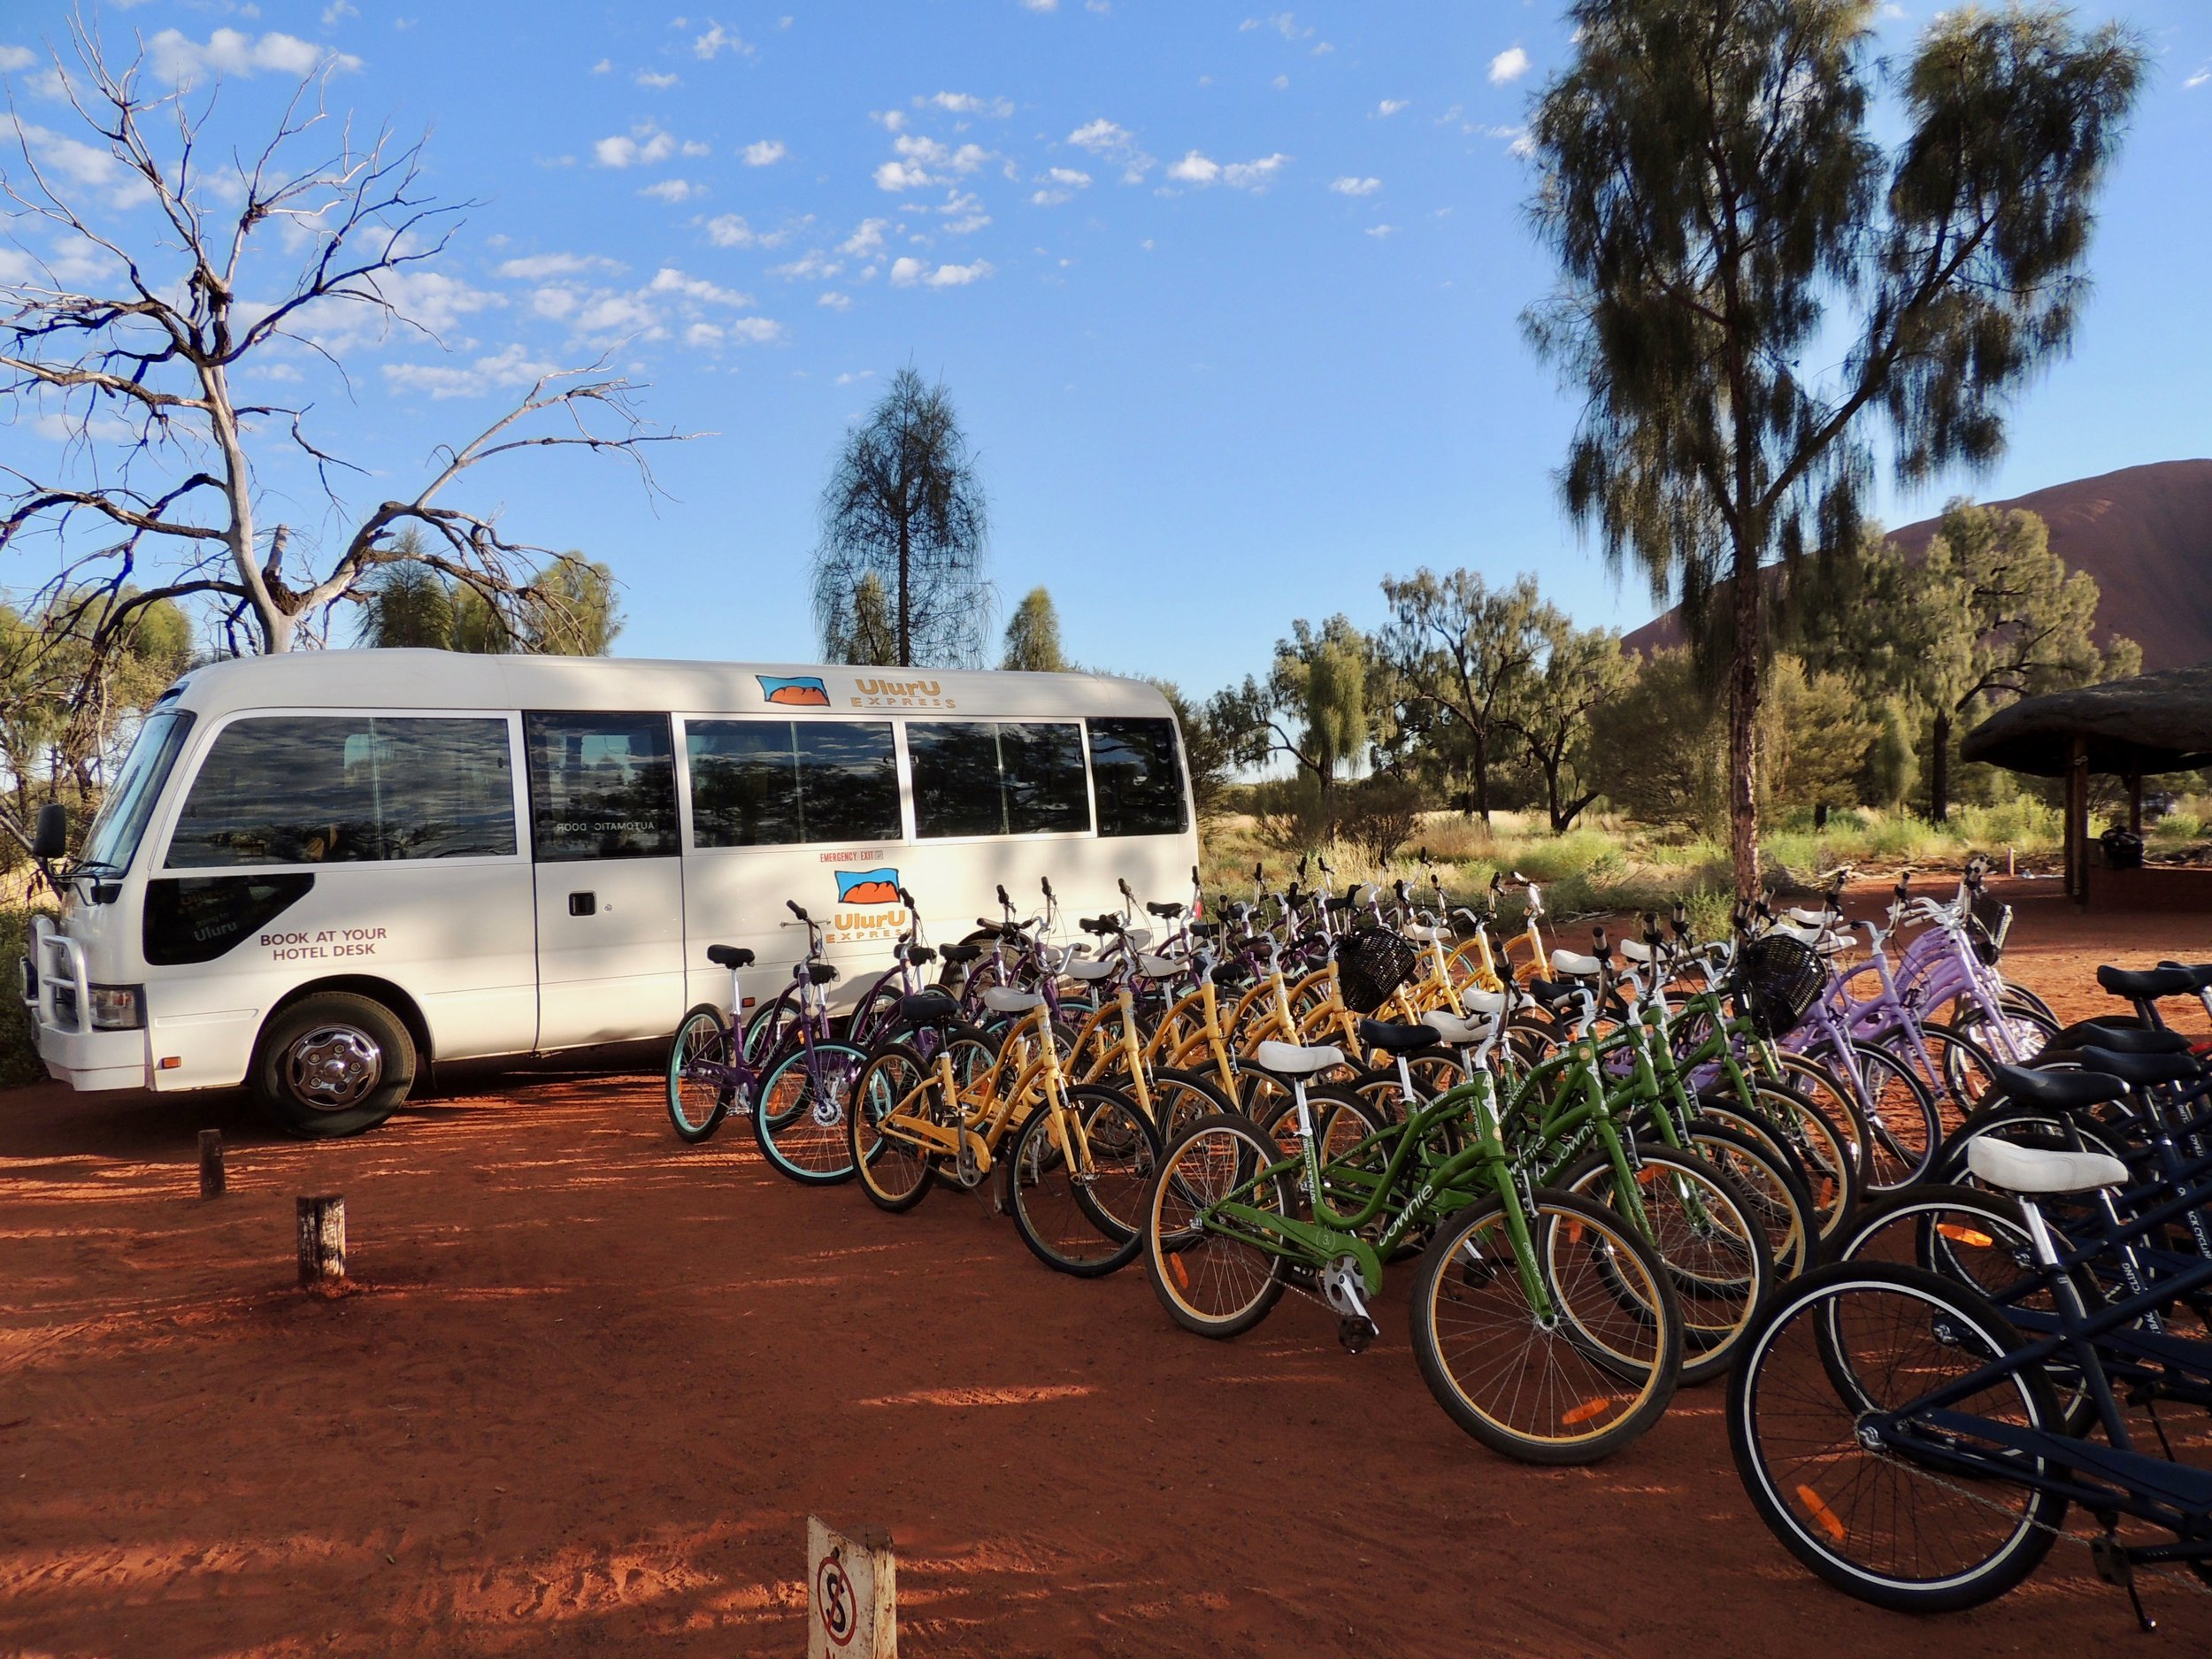 Uluru Bike Ride including Transfers